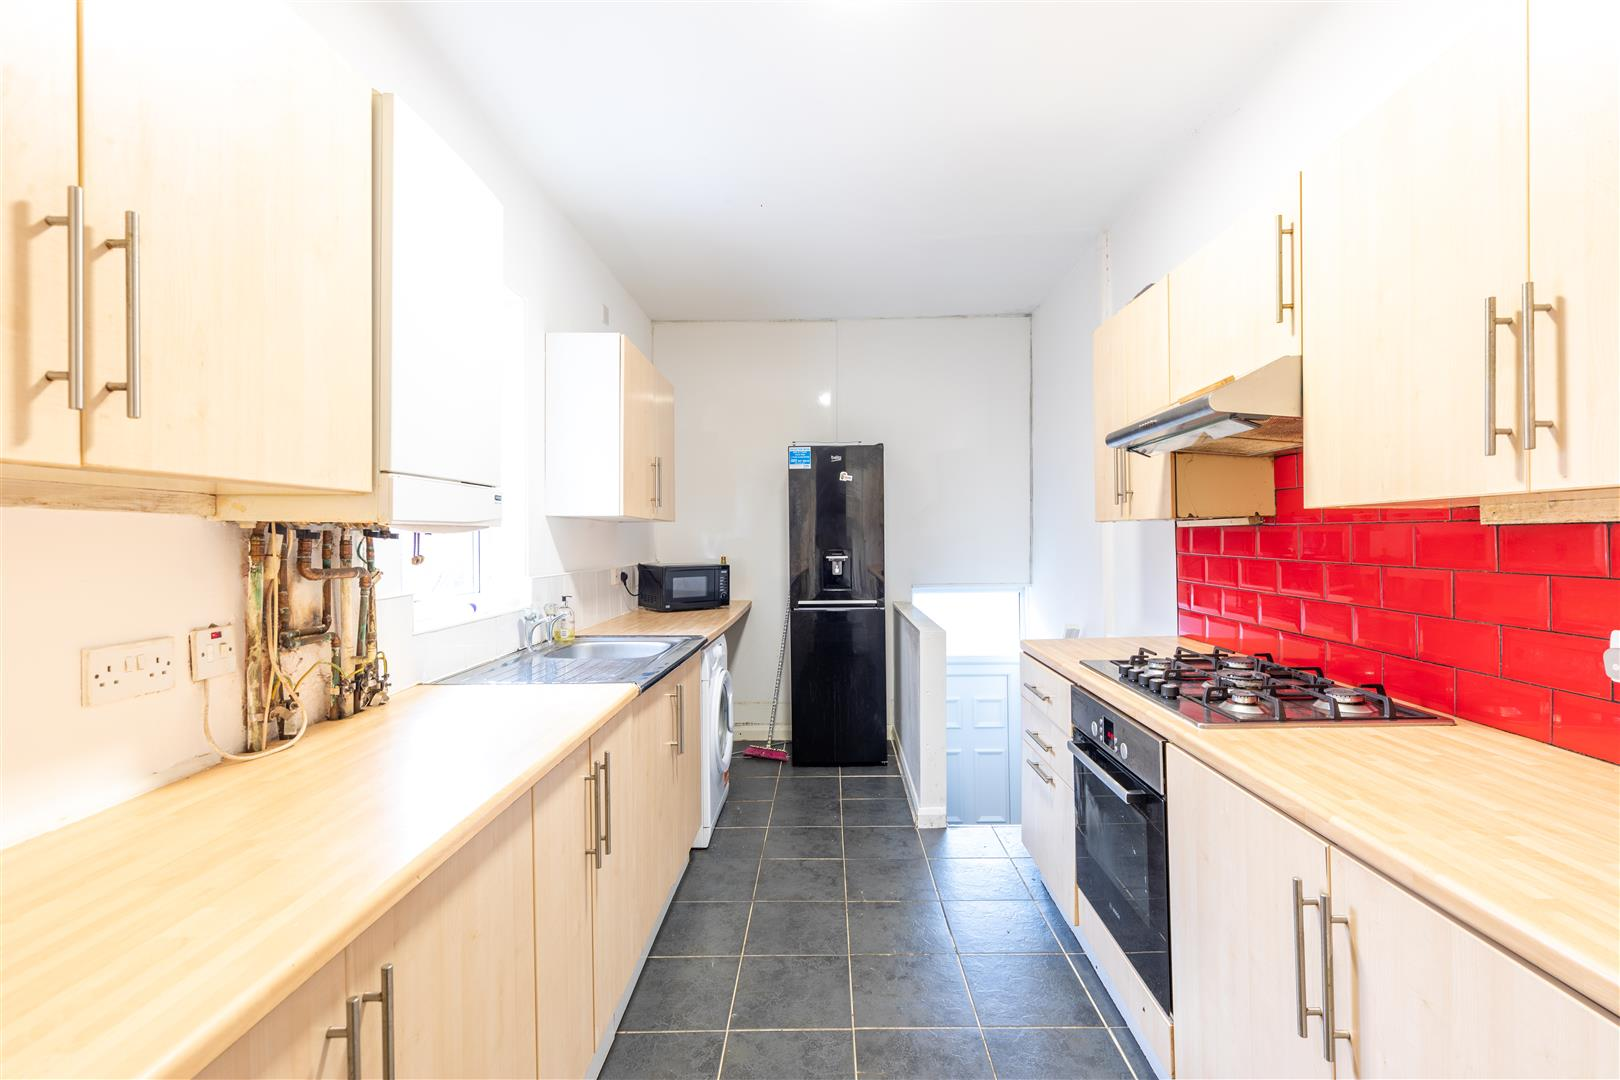 4 bed apartment to rent in Newcastle Upon Tyne, NE6 5LS  - Property Image 1